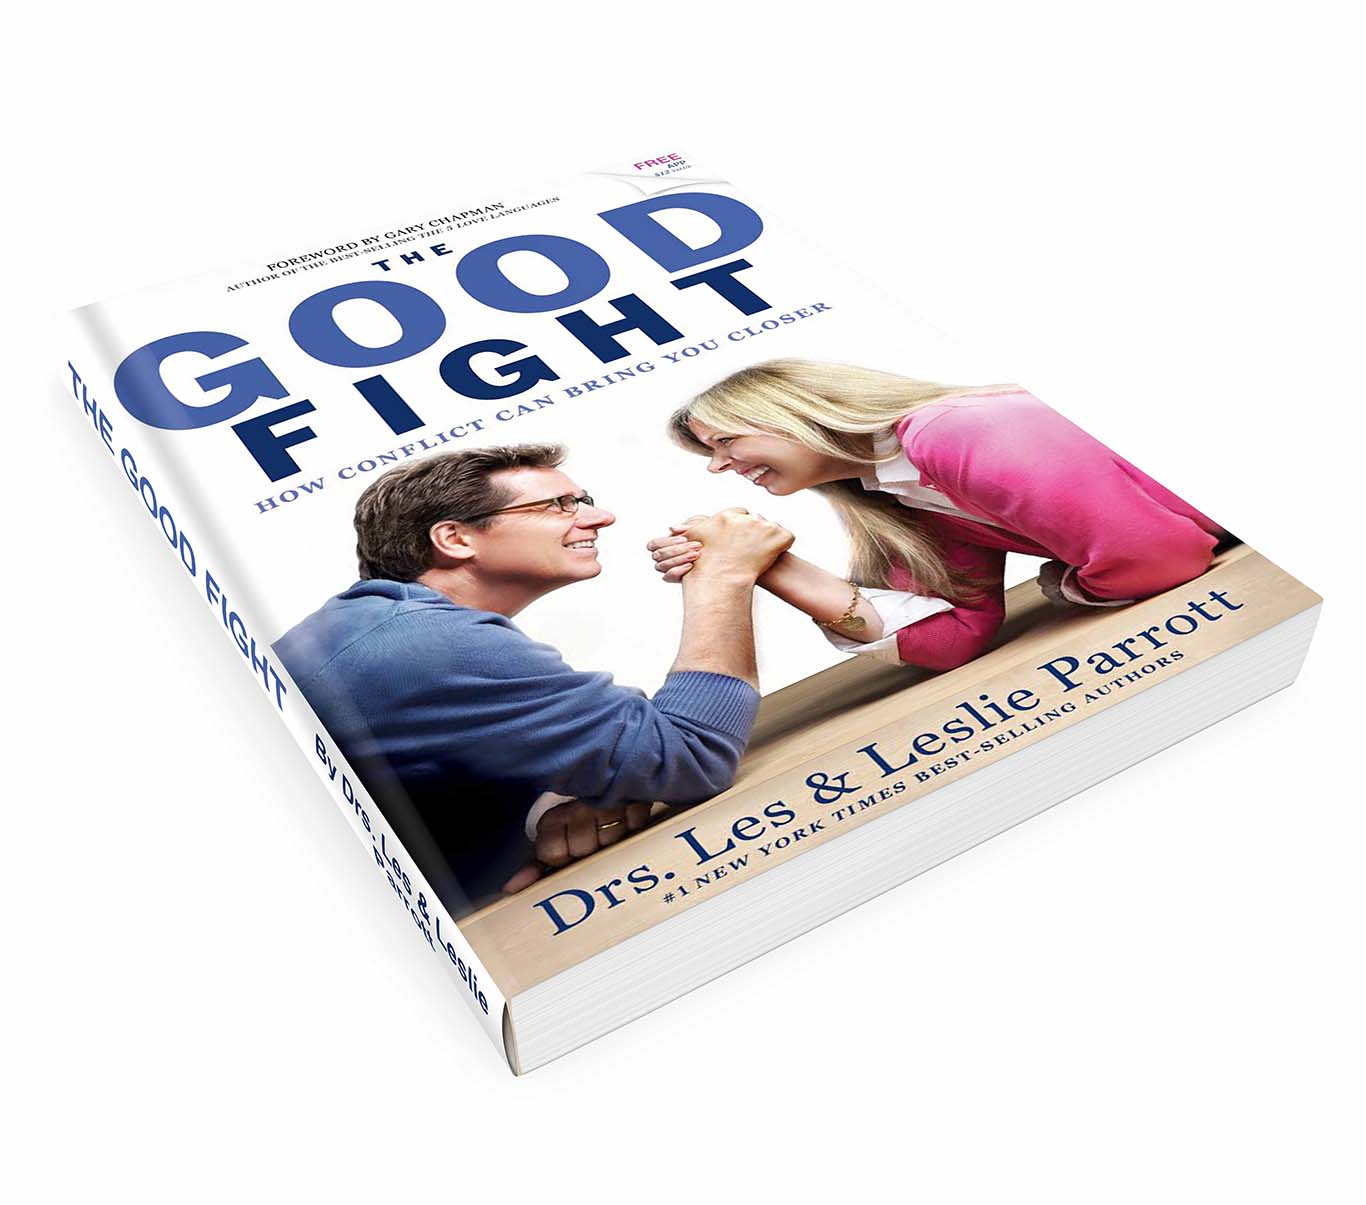 TheGoodFight-Low-72dpi.jpg